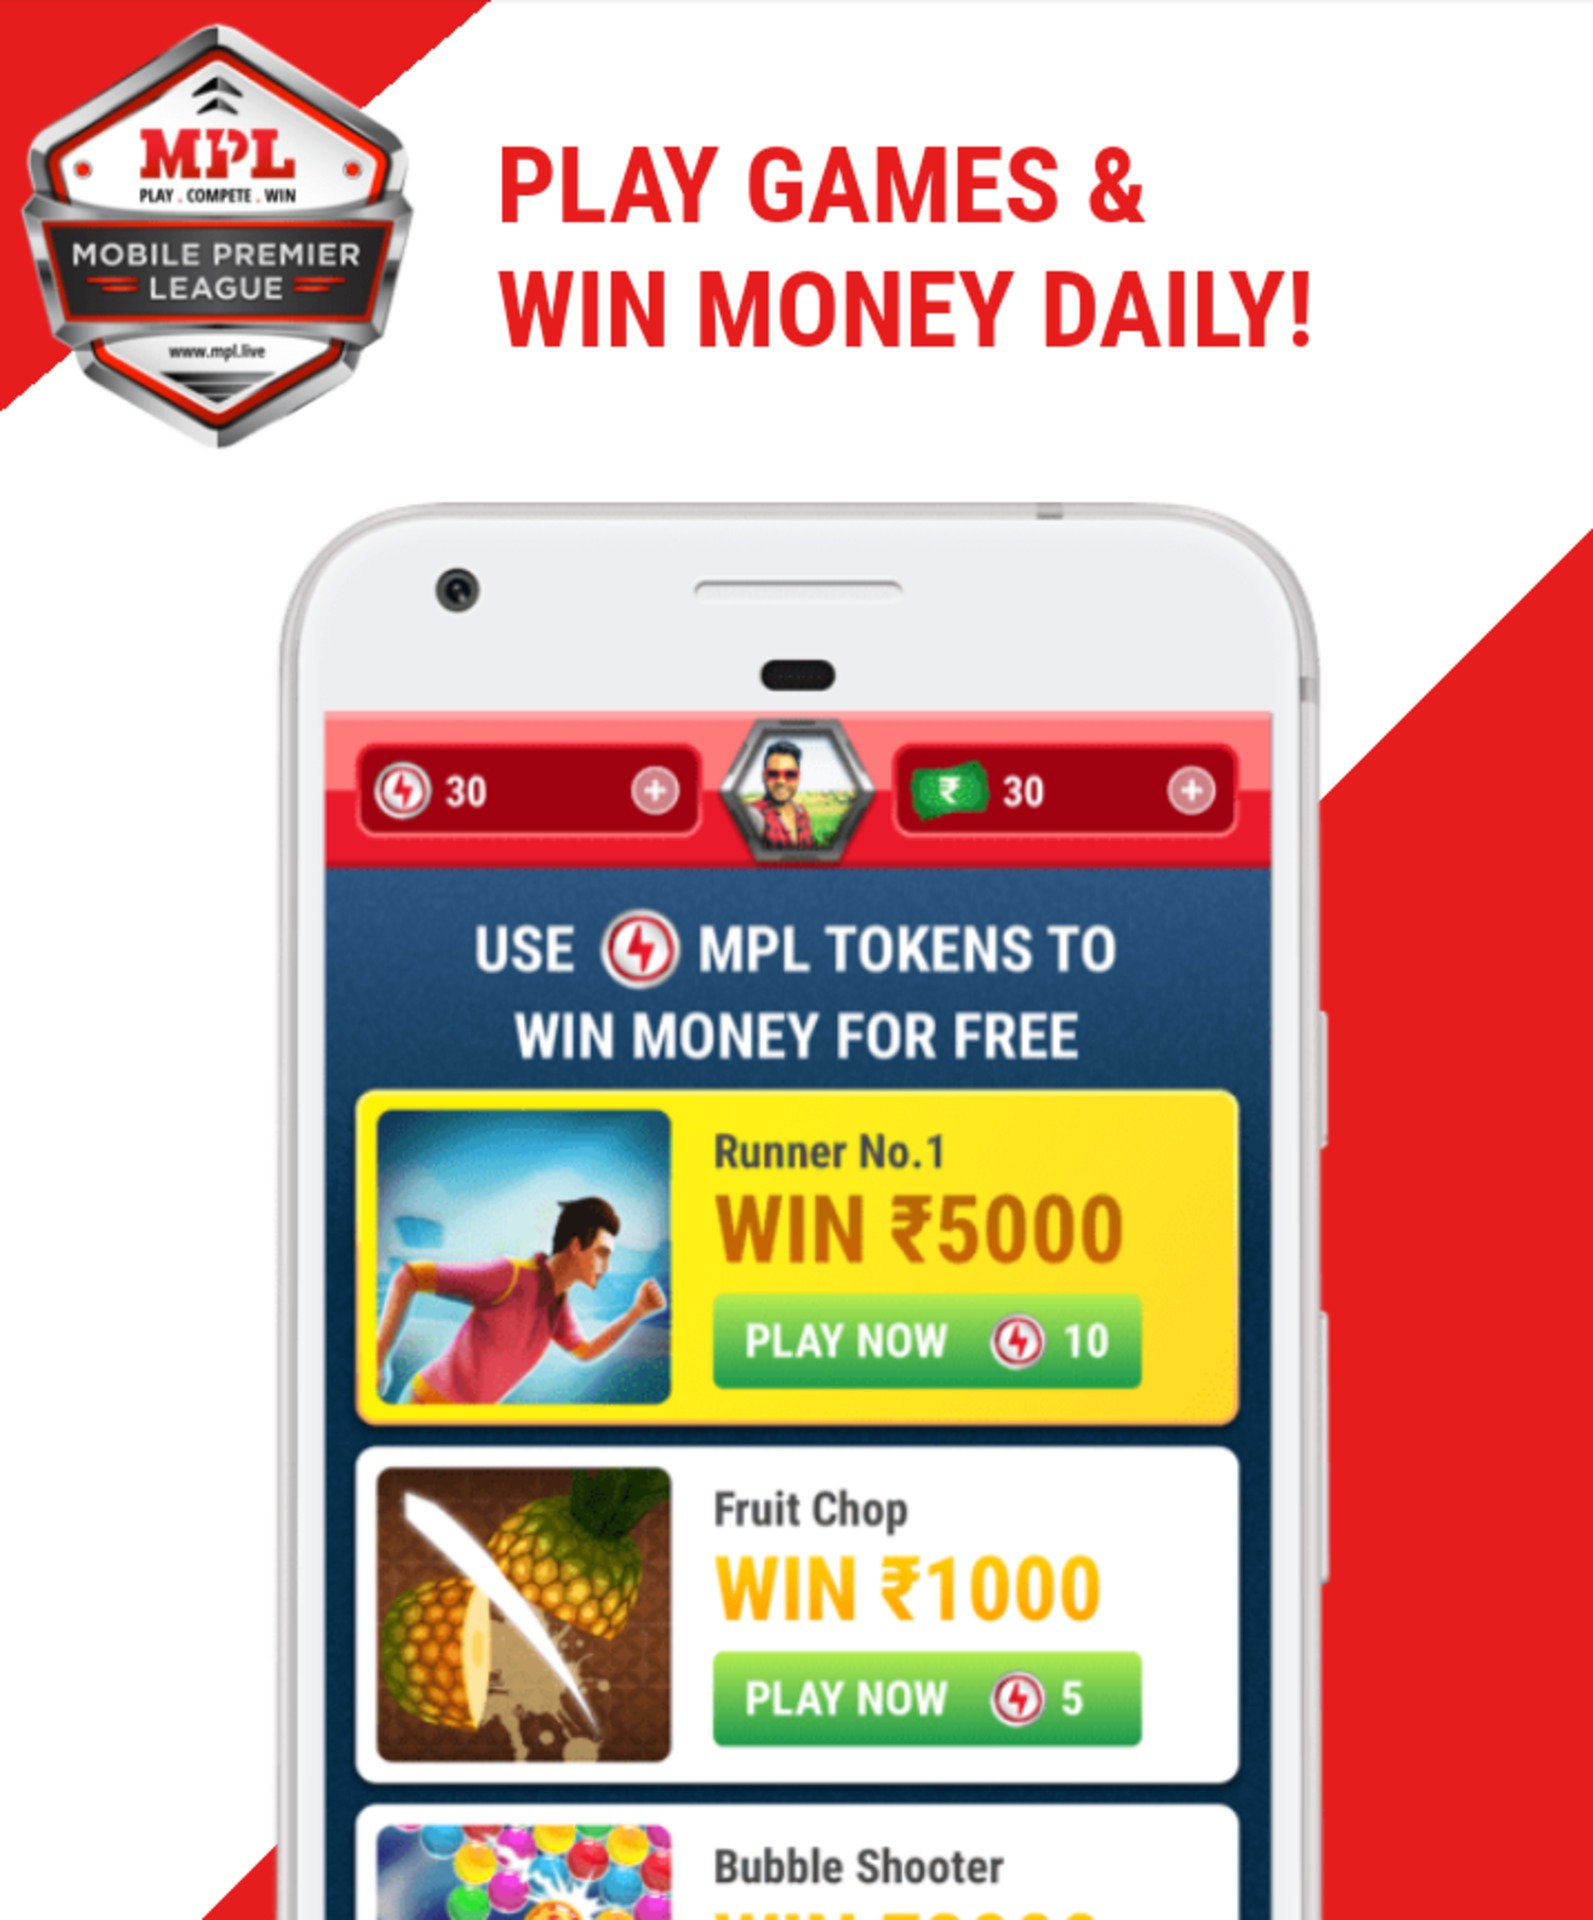 How to earn money via referral to friends and play cash tournaments in MPL? image